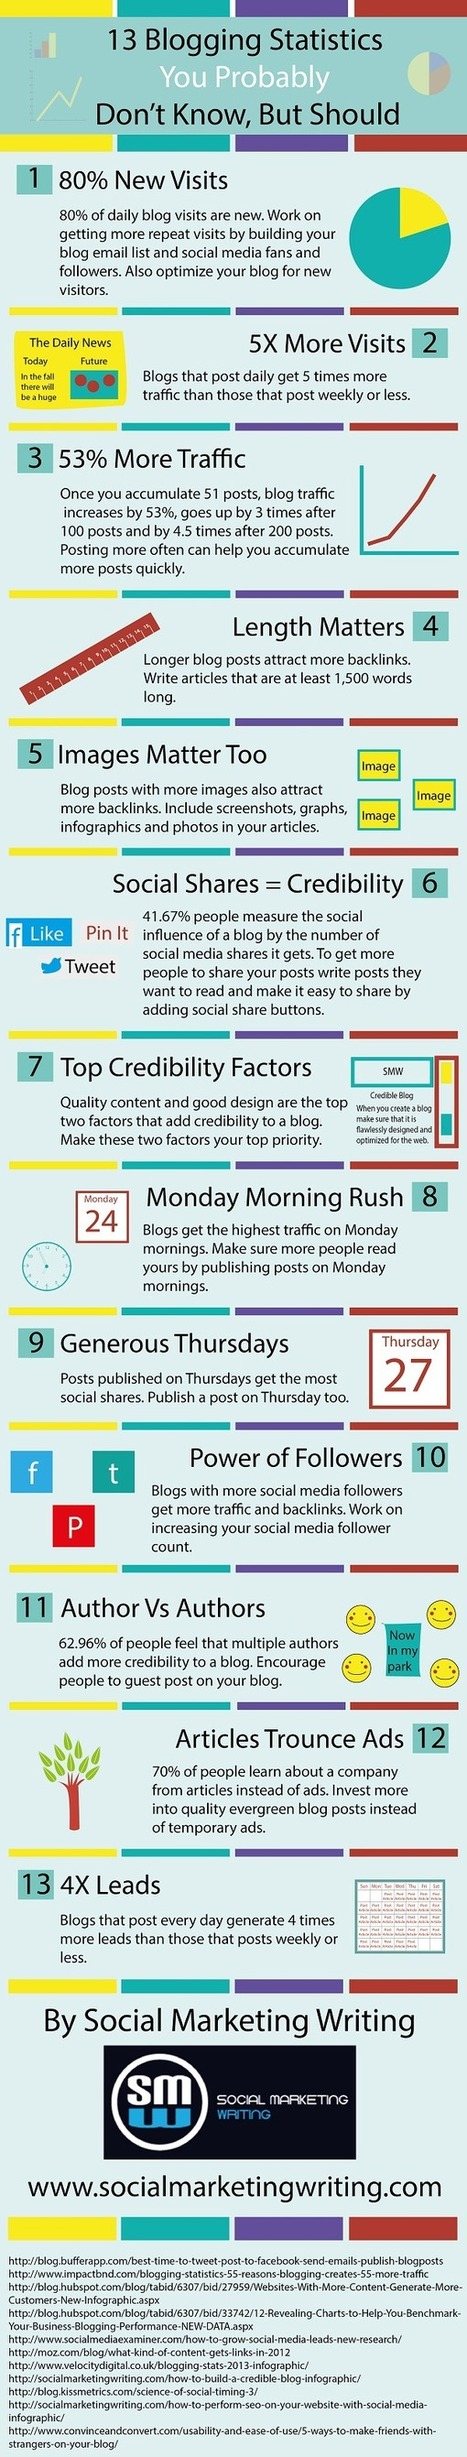 13 Blogging Statistics You Probably Don't Know, But Should [Infographic] | The Perfect Storm Team | Scoop.it